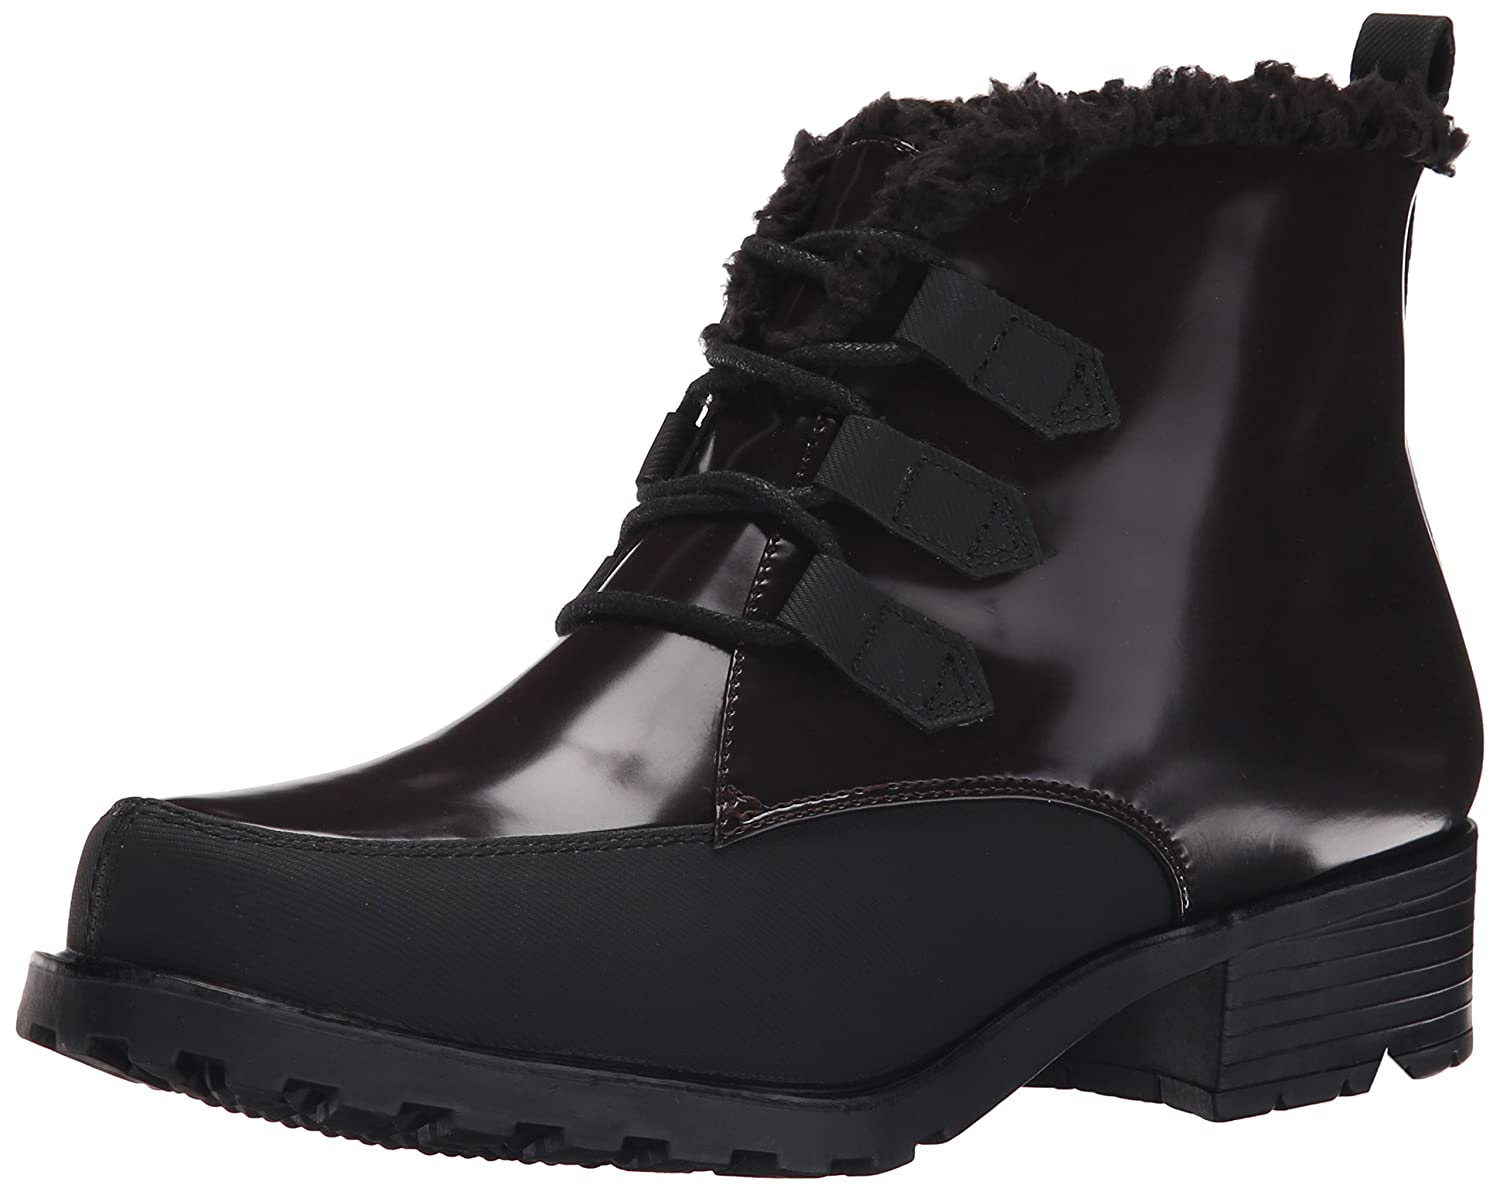 Trotters Women's Snowflake III Boot B00RZV6ED4 8 2W US|Bordeaux/Black